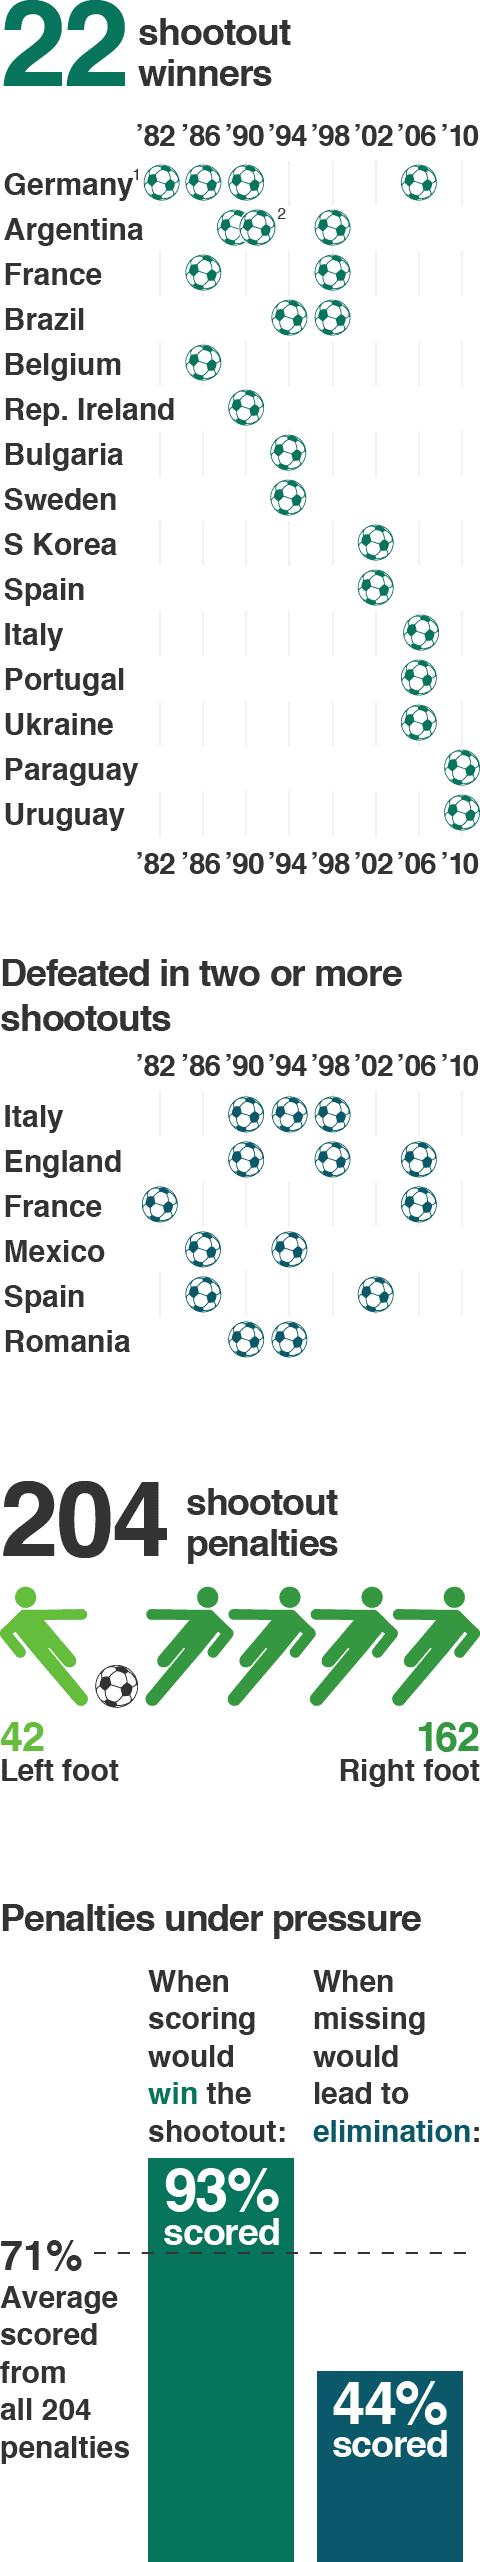 A graphic showing penalty shootout stats